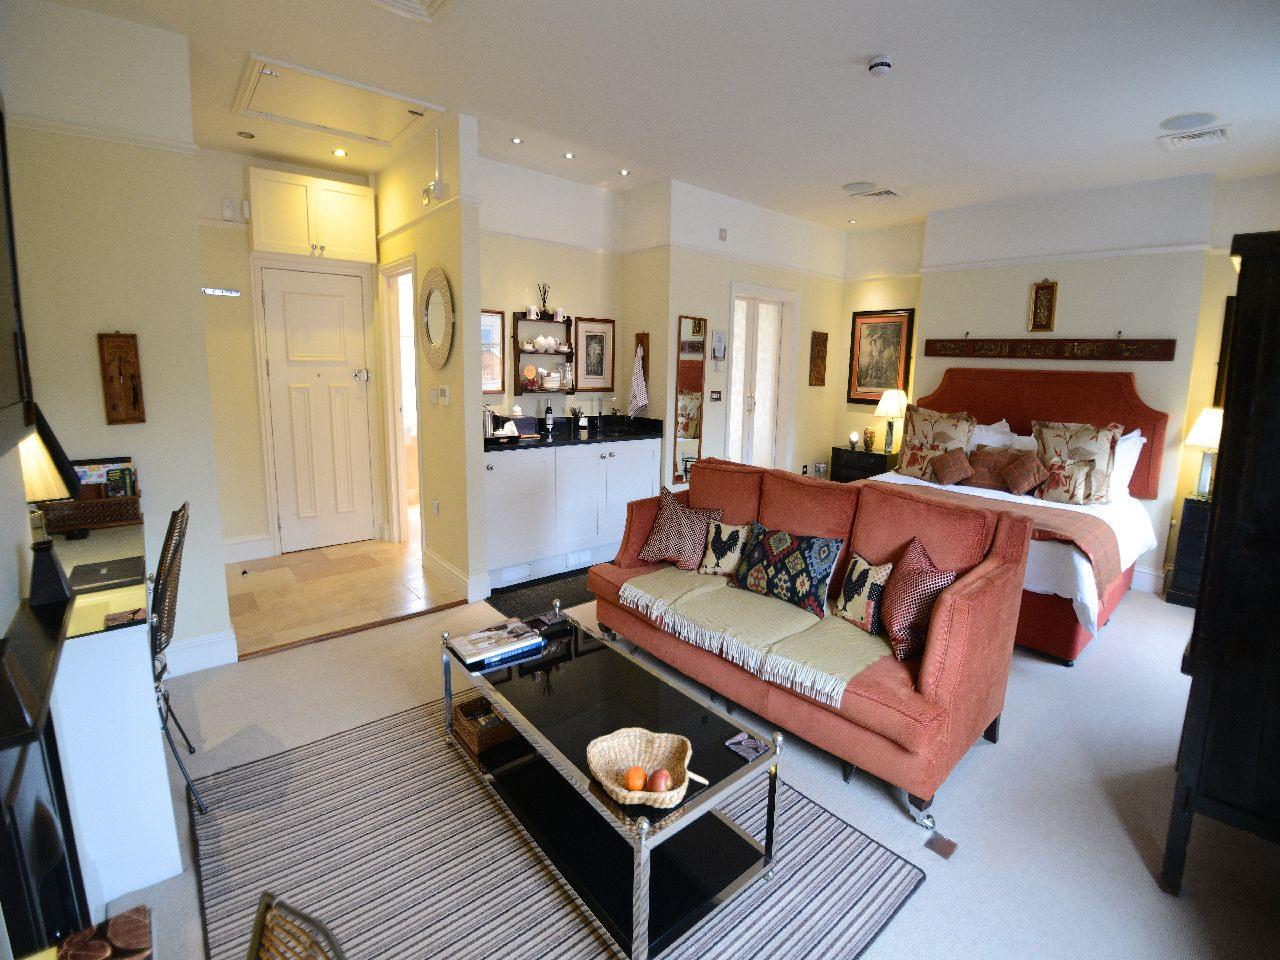 Suite-Deluxe-Ensuite with Bath-Street View-Studio Suite - Base Rate